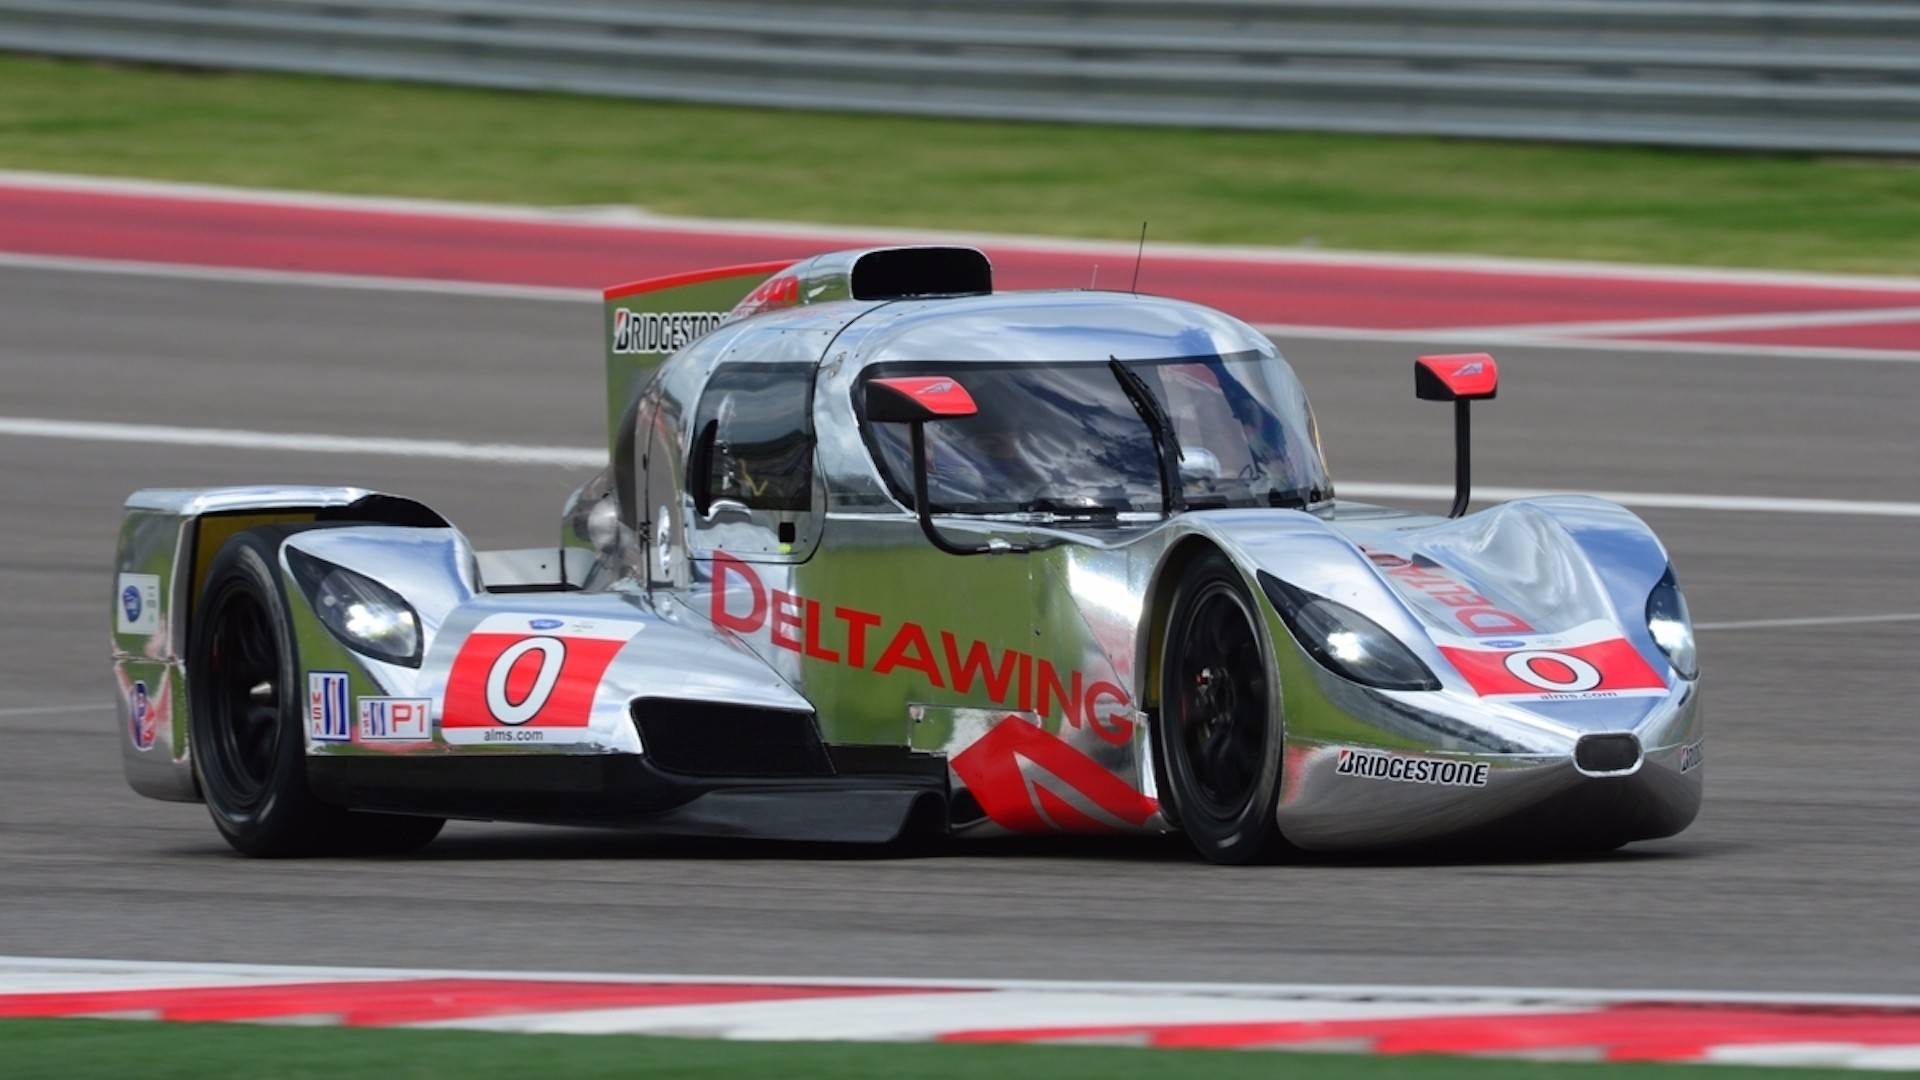 DeltaWing 2013 for sale (3)